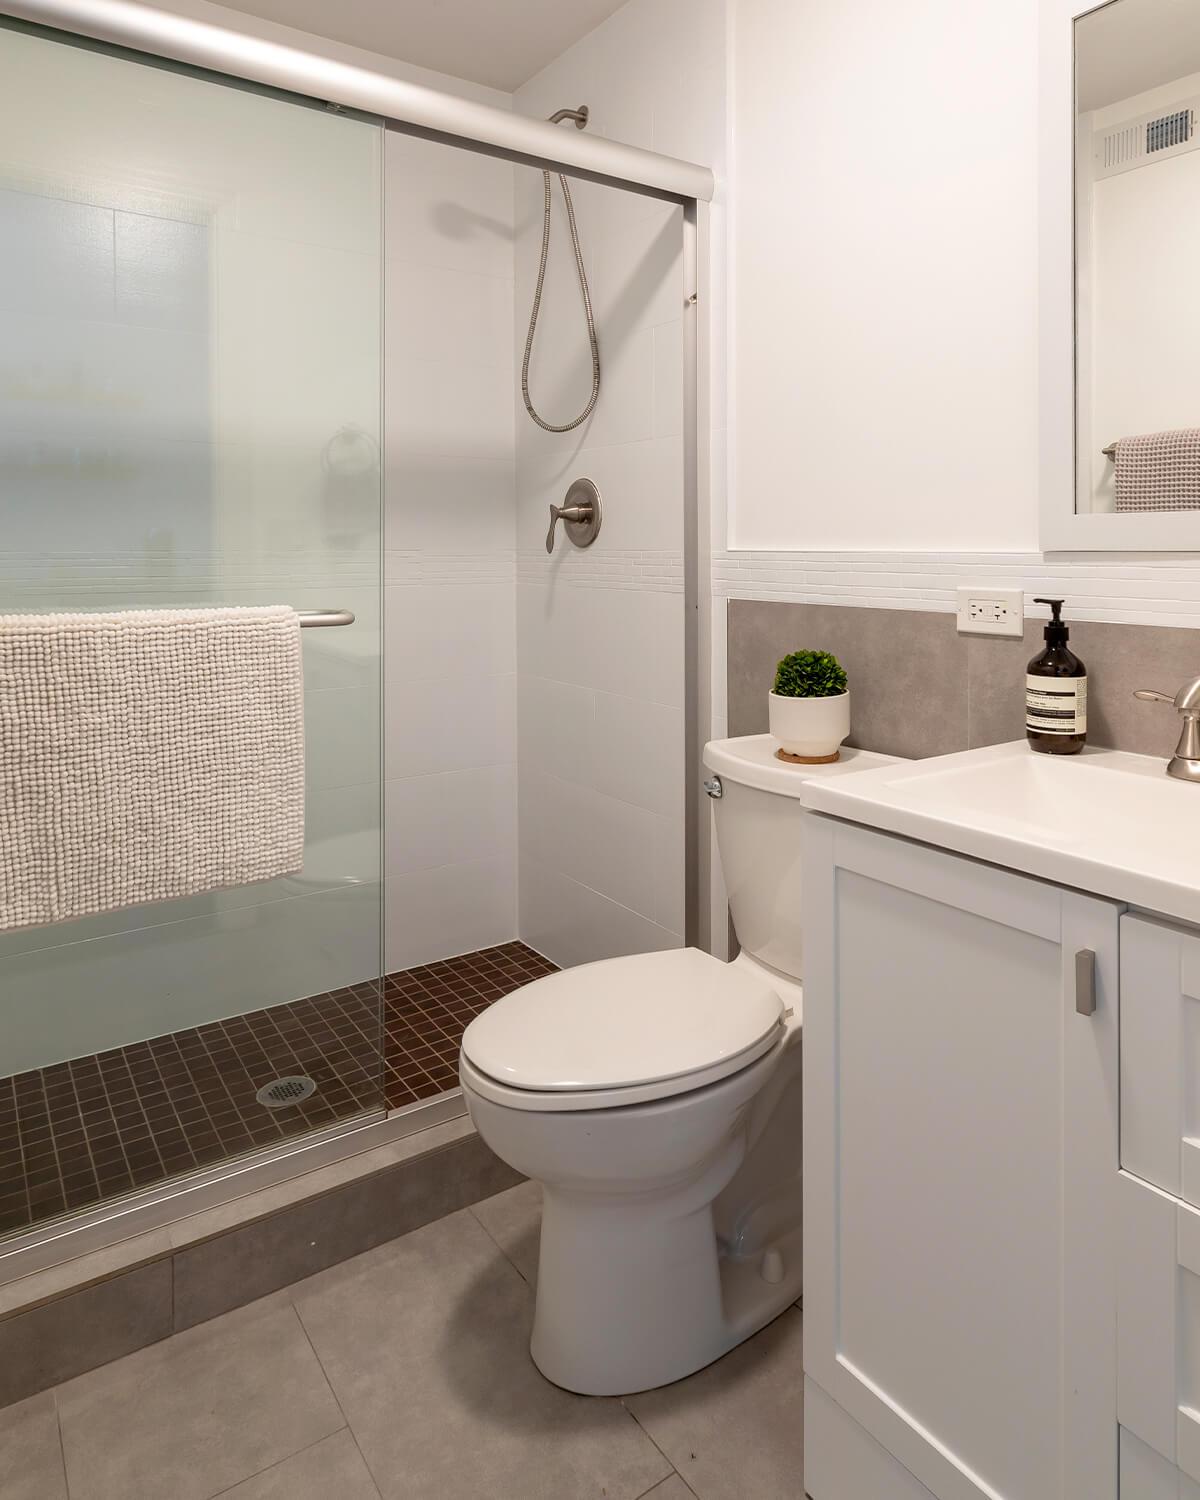 Chicago Row House - Chicago, Illinois, United States | vacation homes for rent